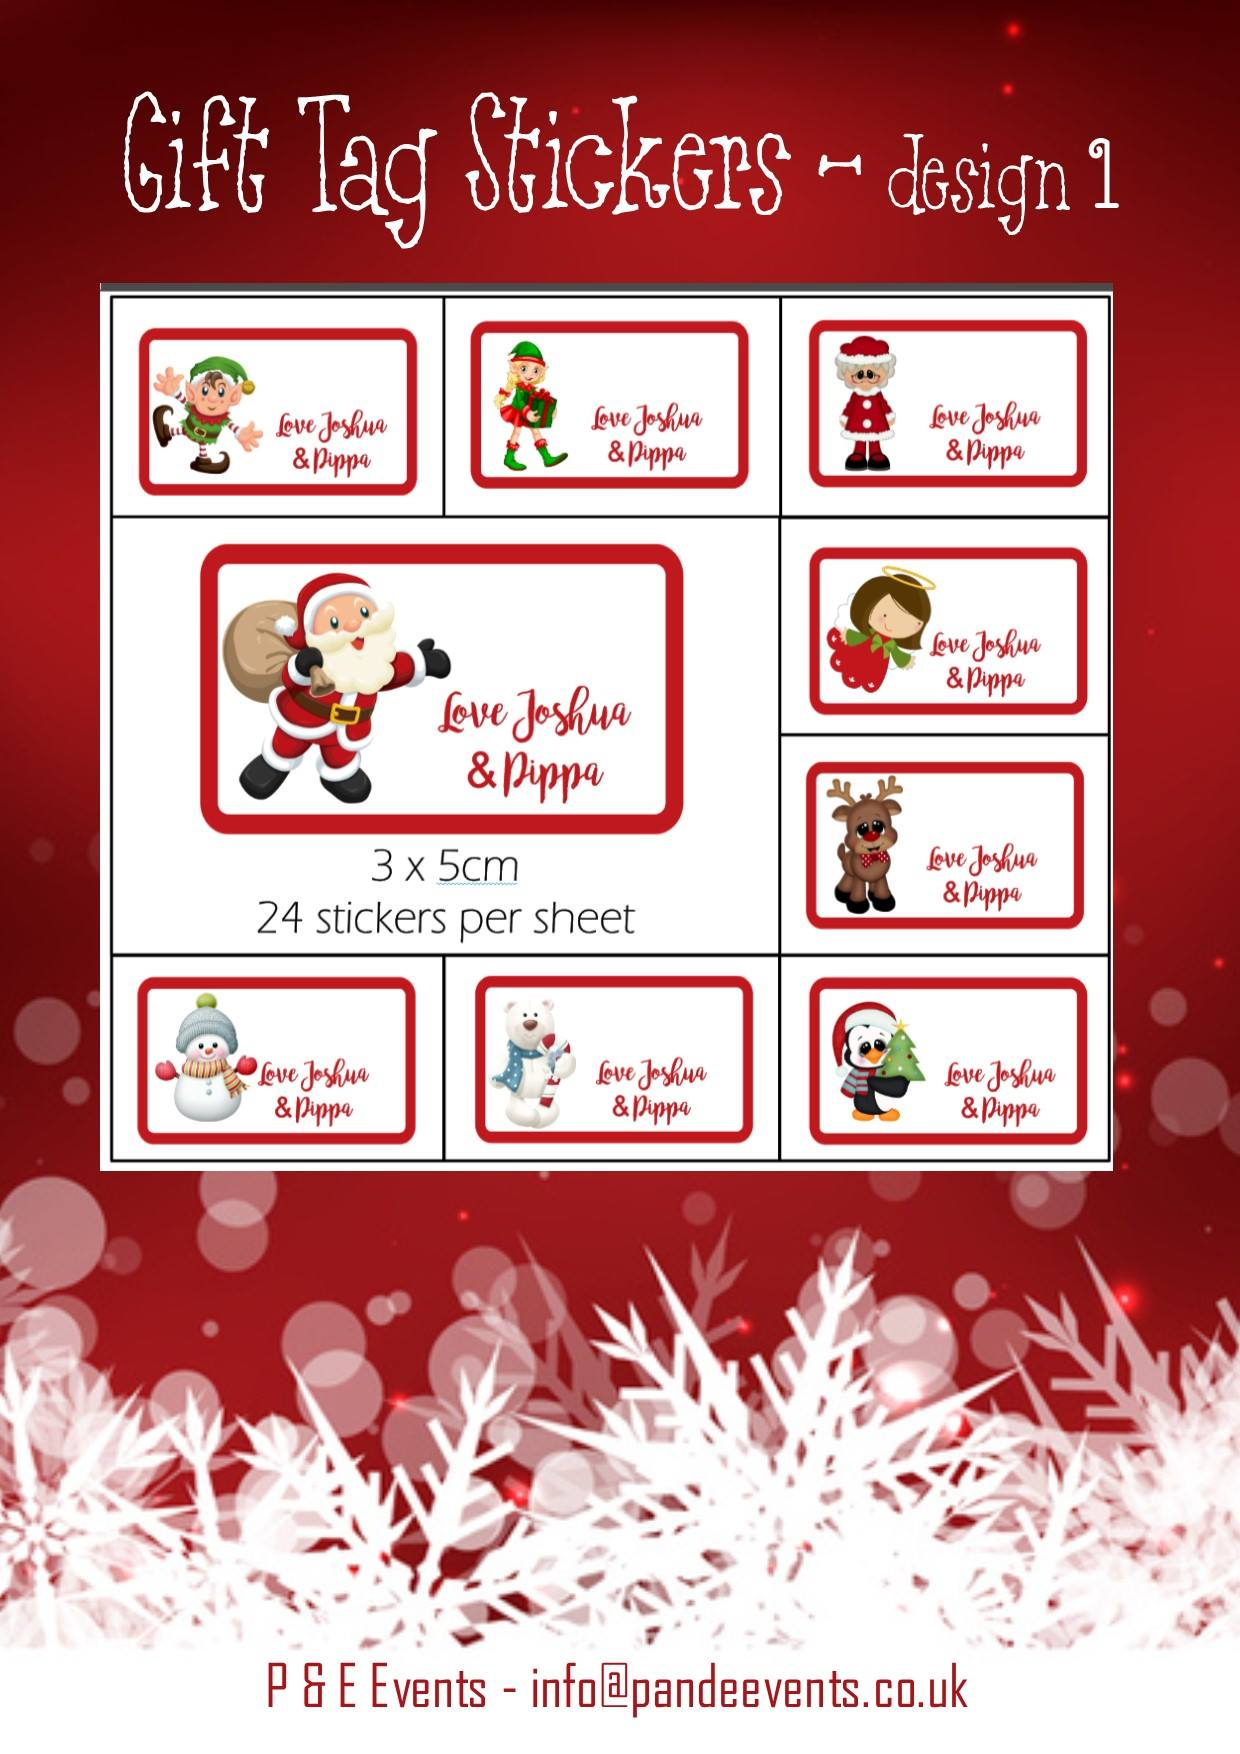 Christmas Gift Tag personalised stickers, design 1, 24 pack